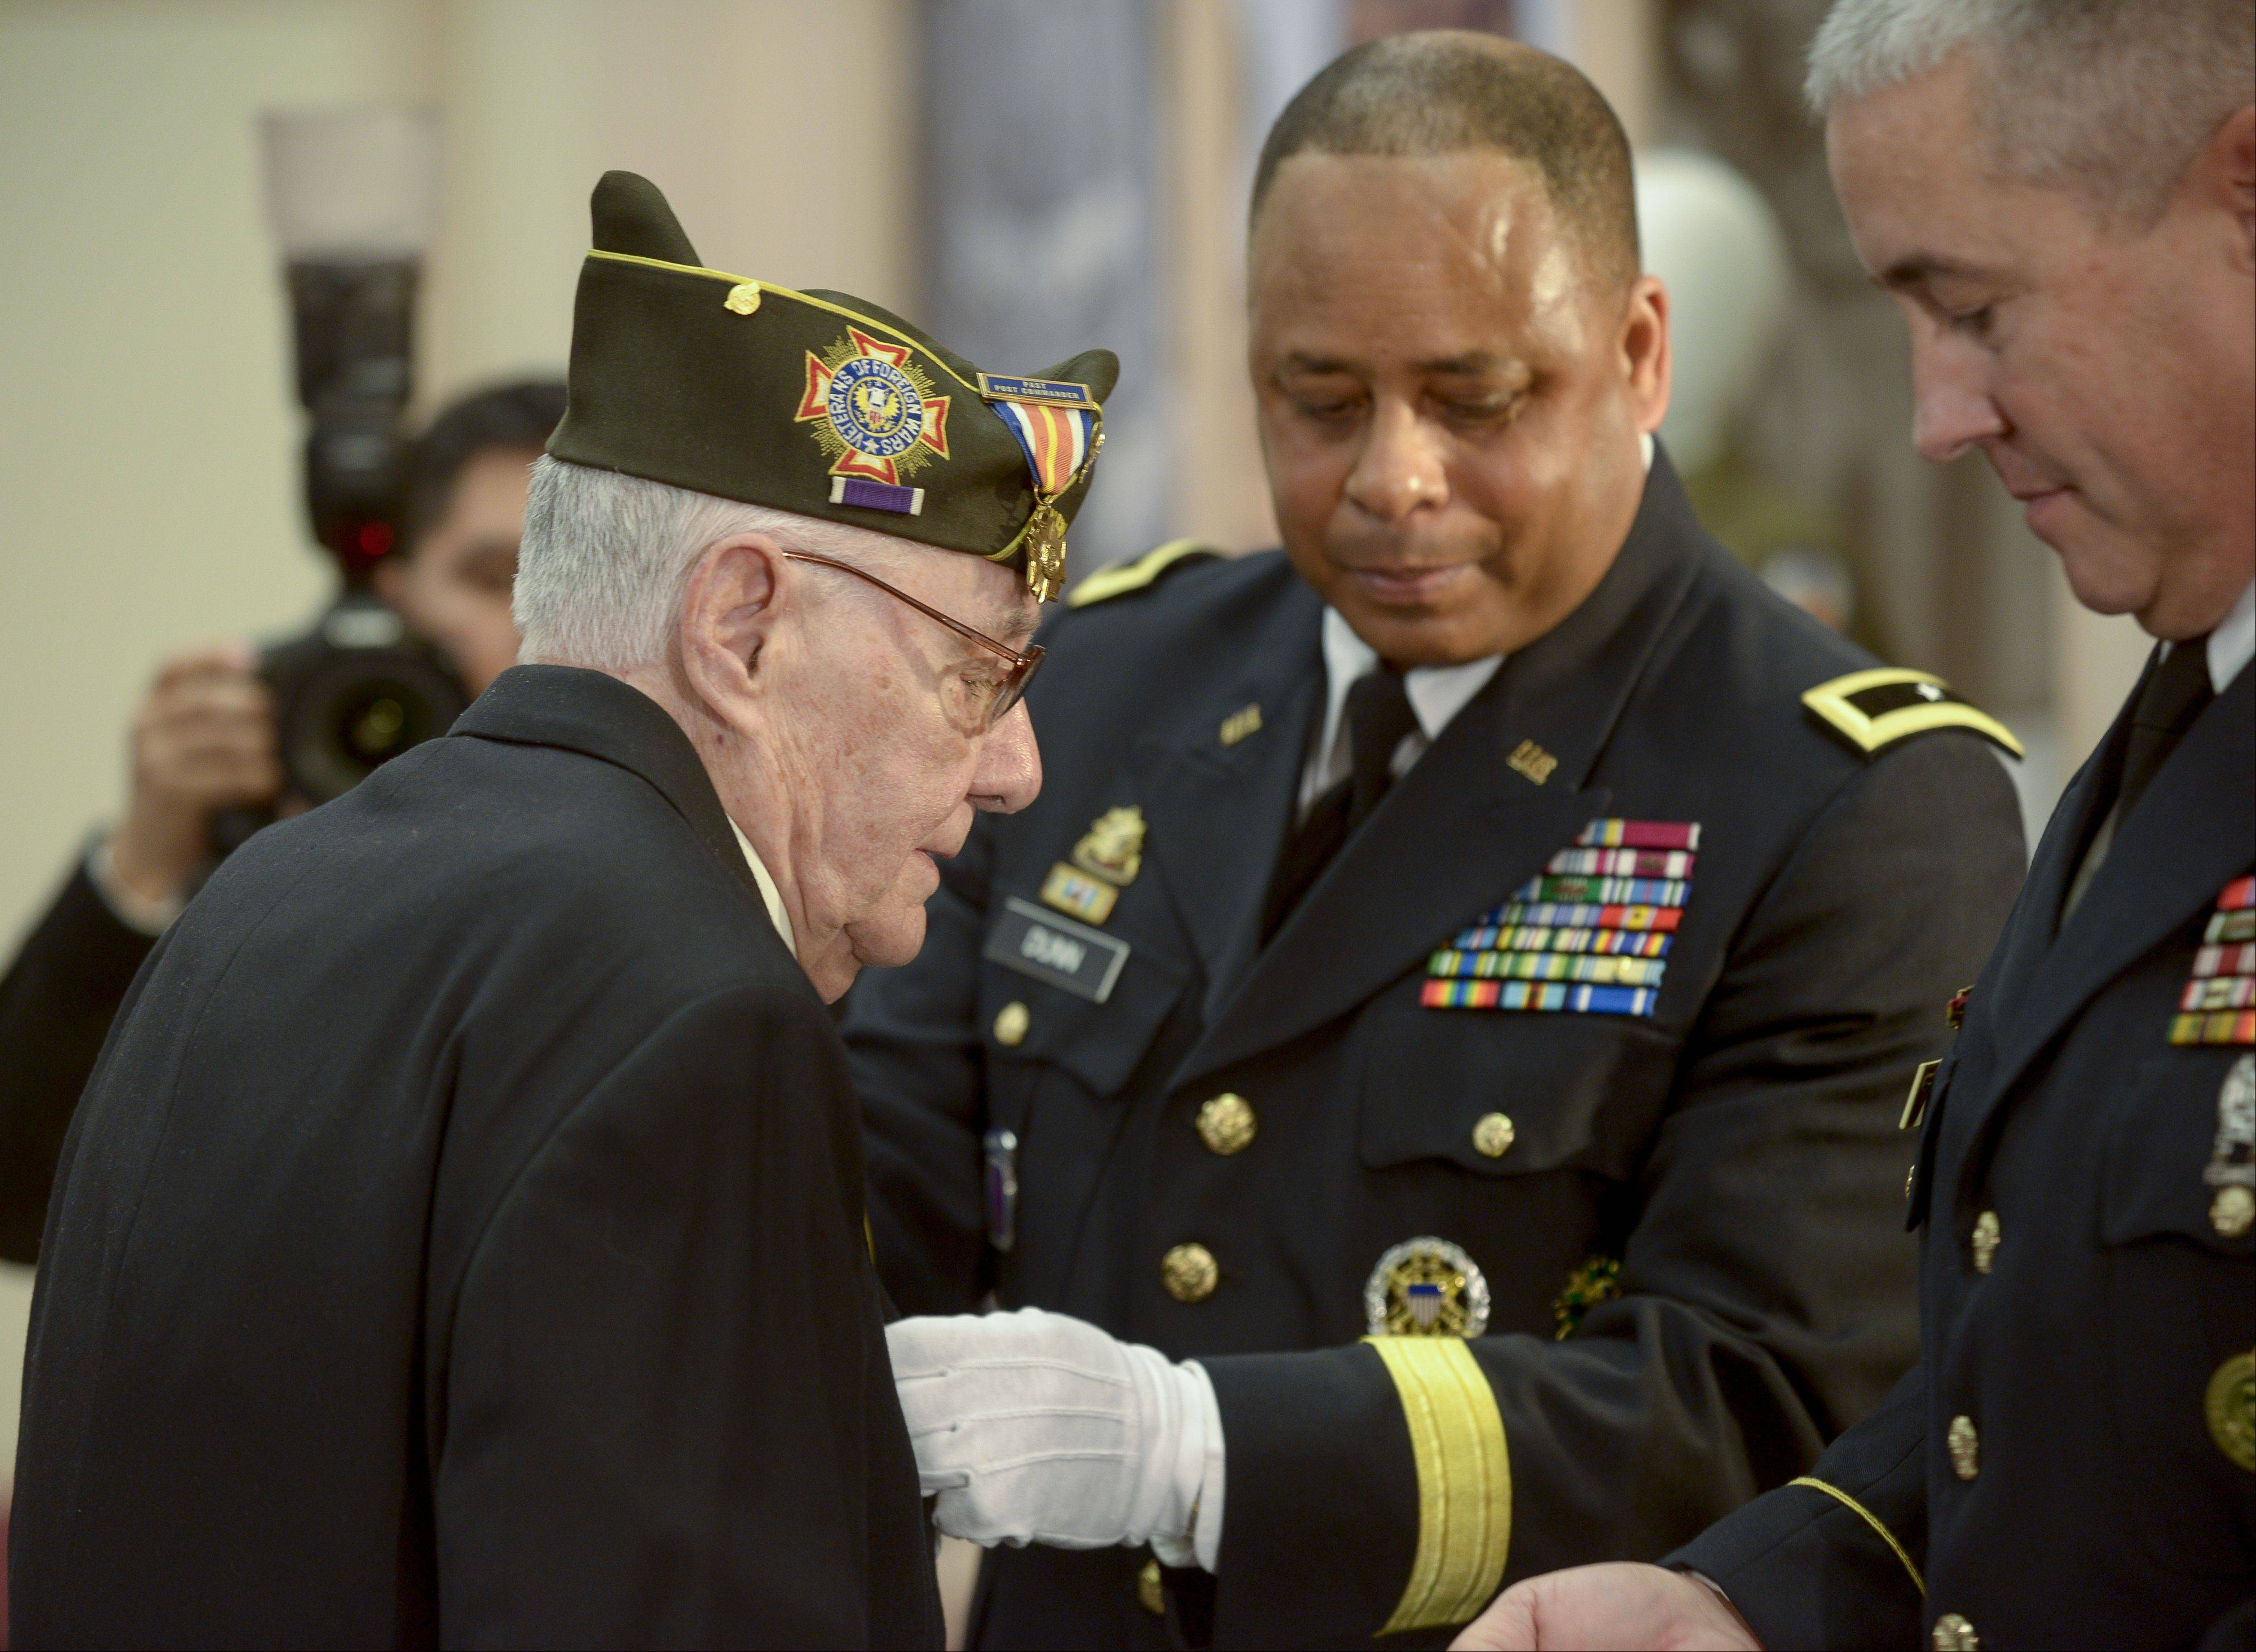 Brigadier General Gracus K. Dunn awards Frank Andrews, of Des Plaines, six medals he earned during his service with the U.S. Army in World War II, during a ceremony at the First Division Museum at Cantigny Park in Wheaton Sunday.